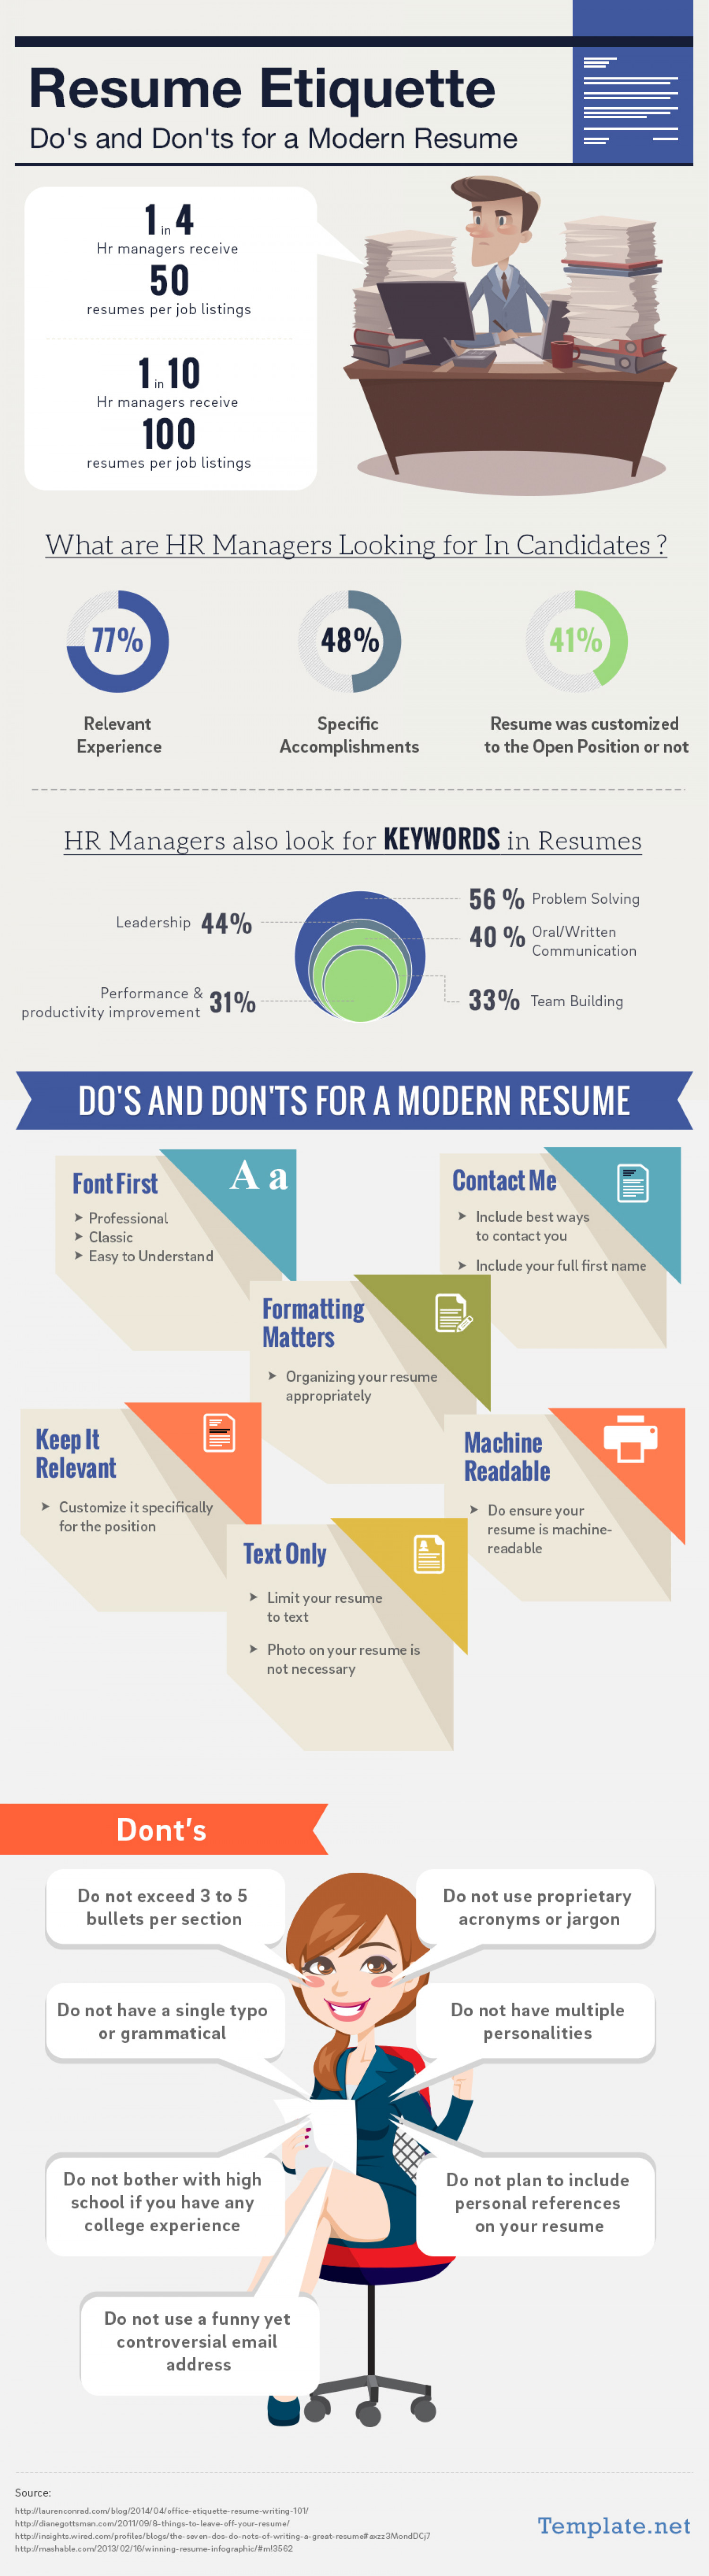 Resume Etiquette DoS  DonTs For A Resume Template  VisualLy